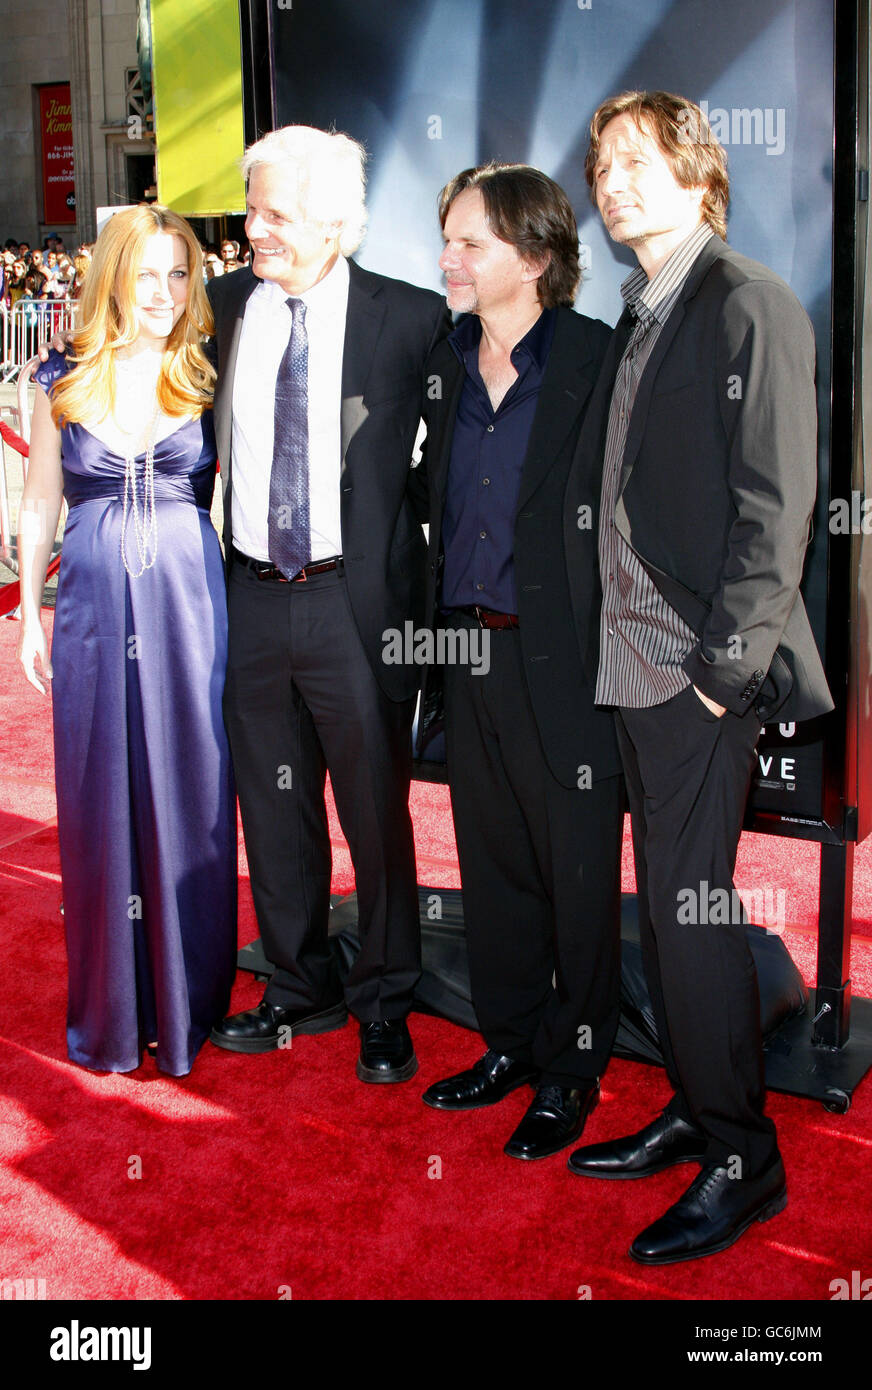 Chris Carter, Gillian Anderson and David Duchovny at the Los Angeles Premiere of 'The X-Files: I Want To Believe' - Stock Image